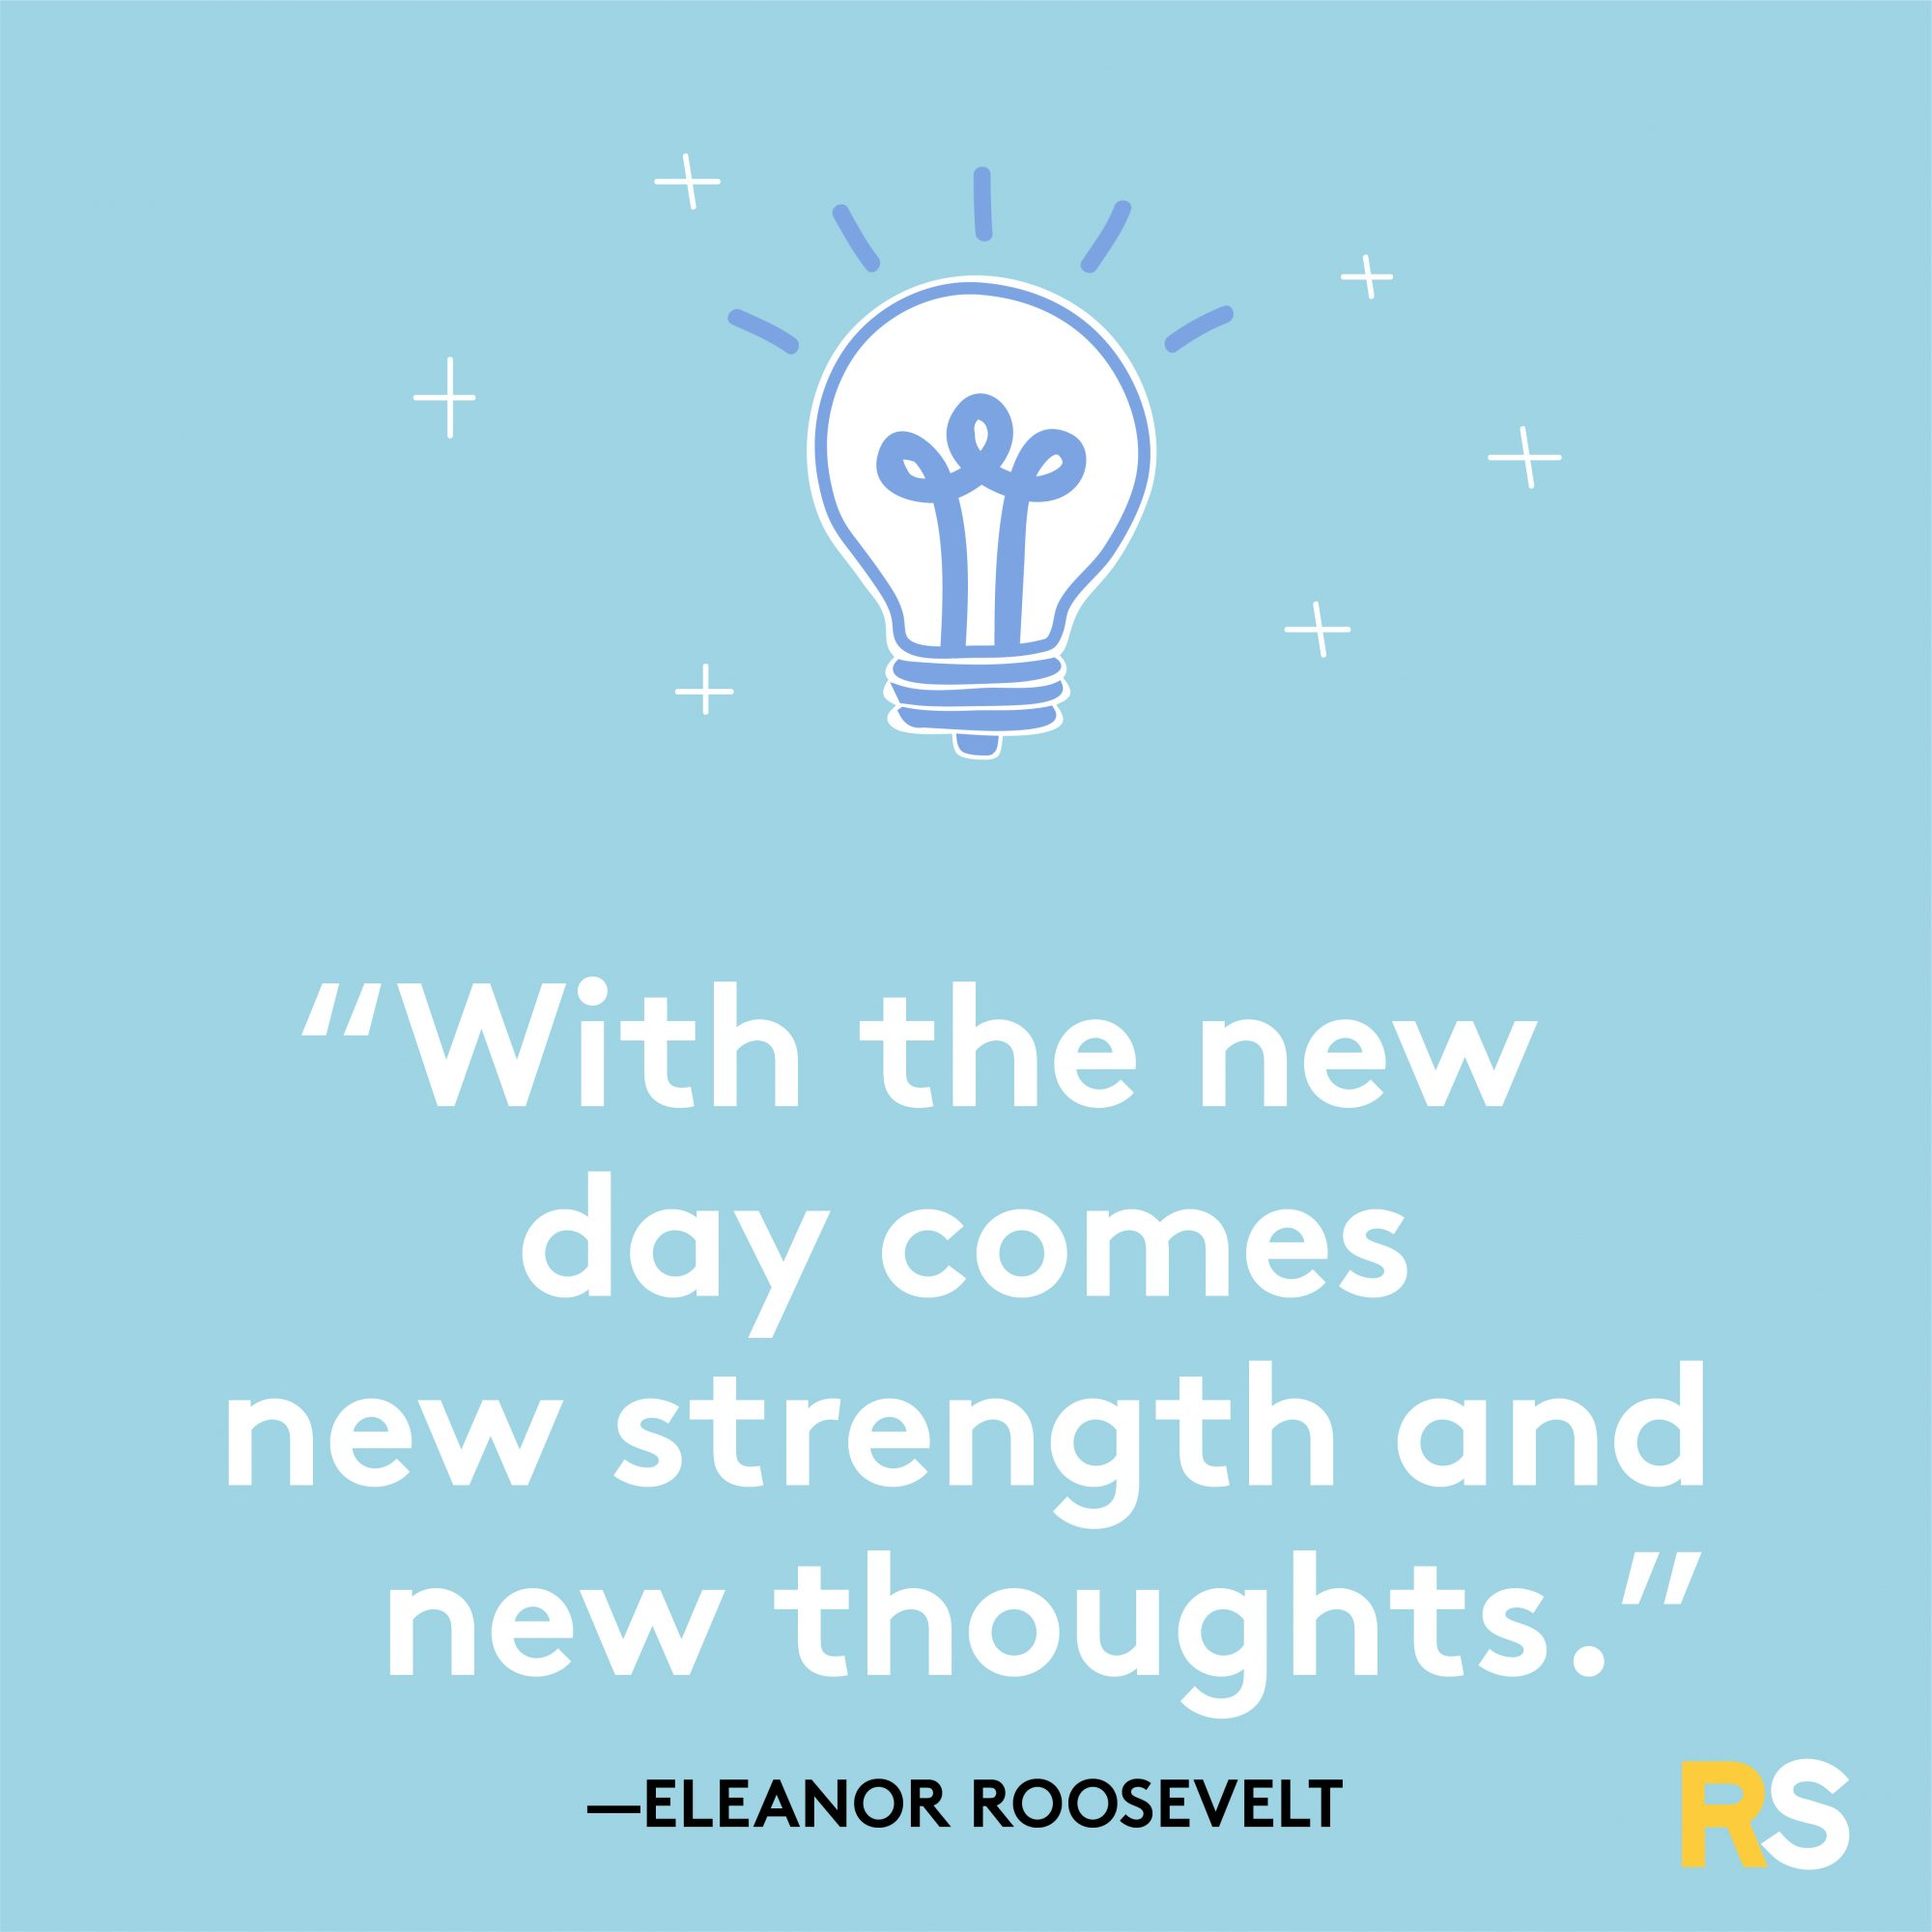 New Day Comes New Strength Quote by Eleanor Roosevelt